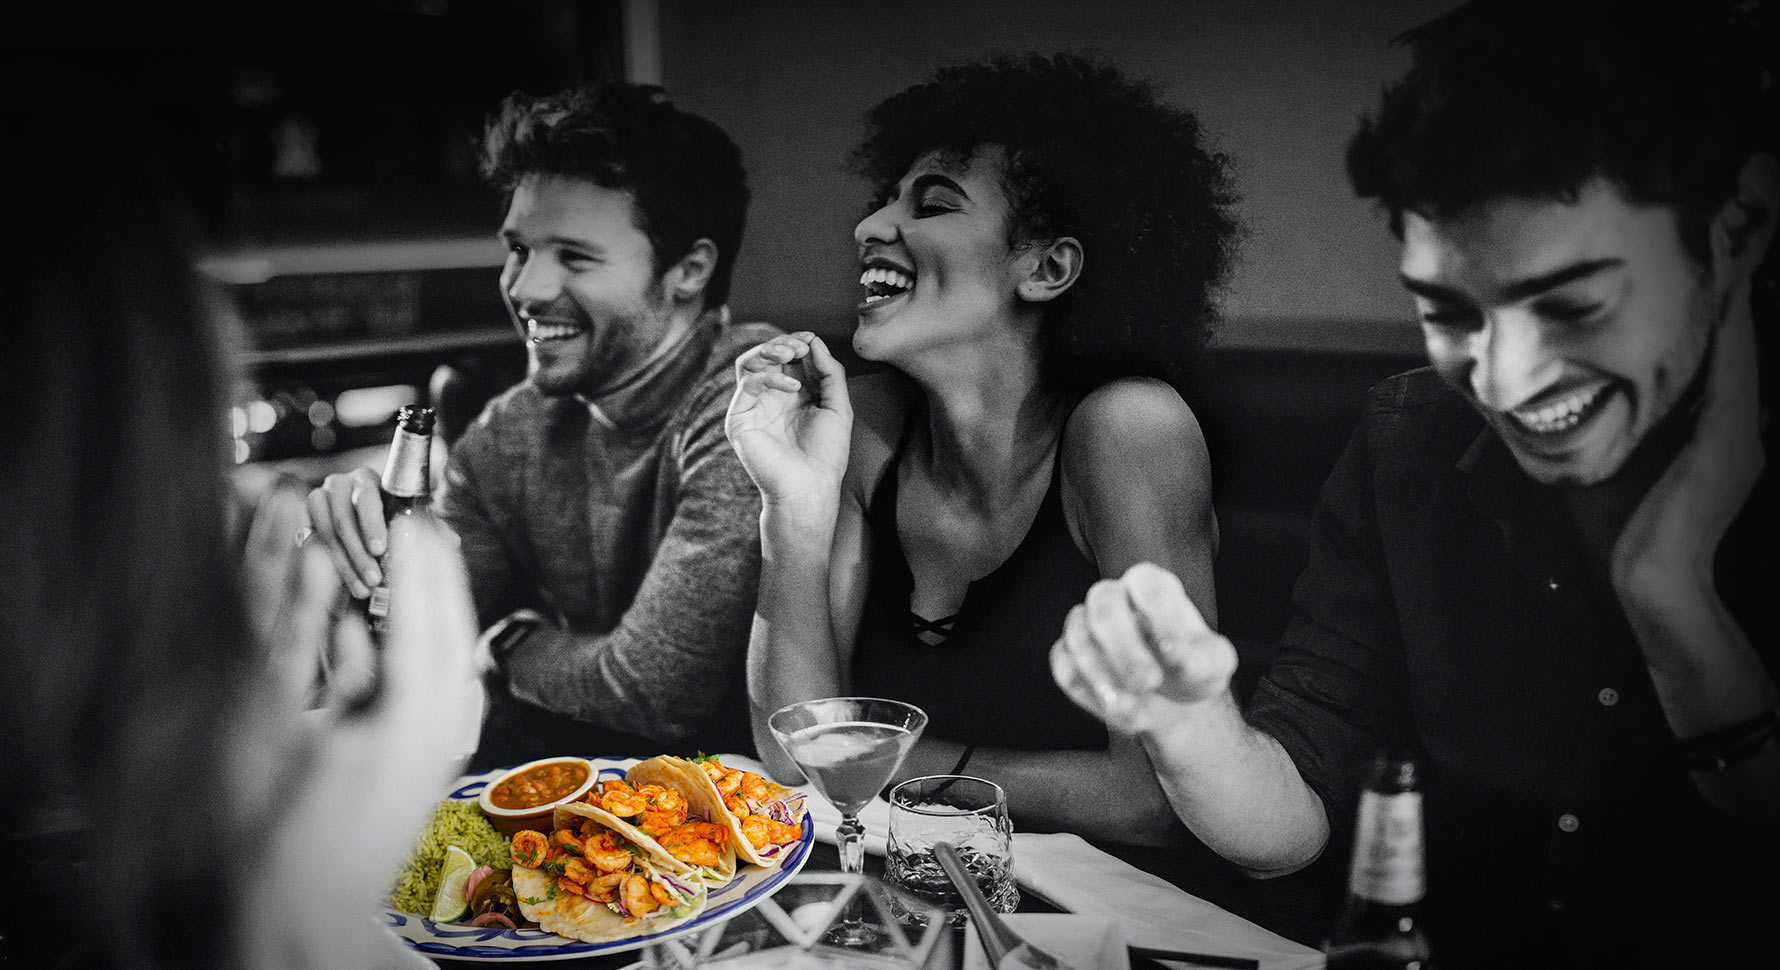 People seated in booth socializing with plate of tacos on table